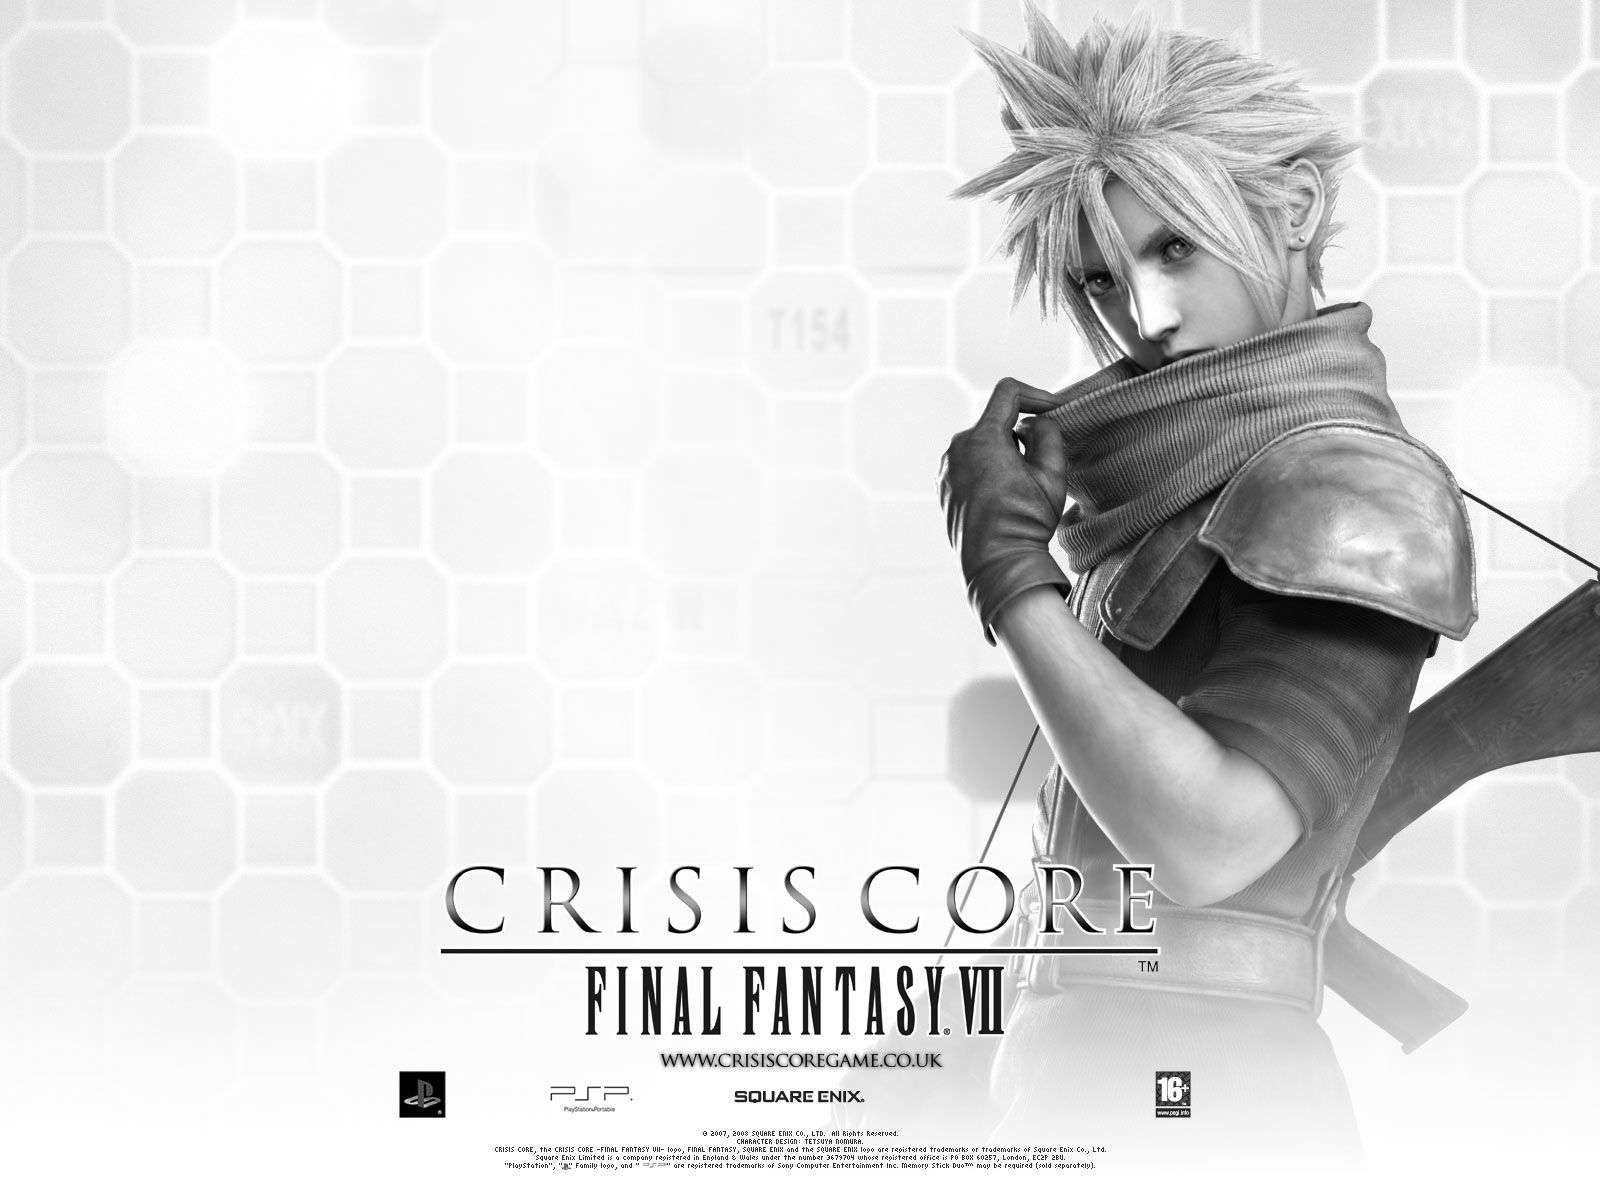 Final Fantasy Video Game Wallpaper 015